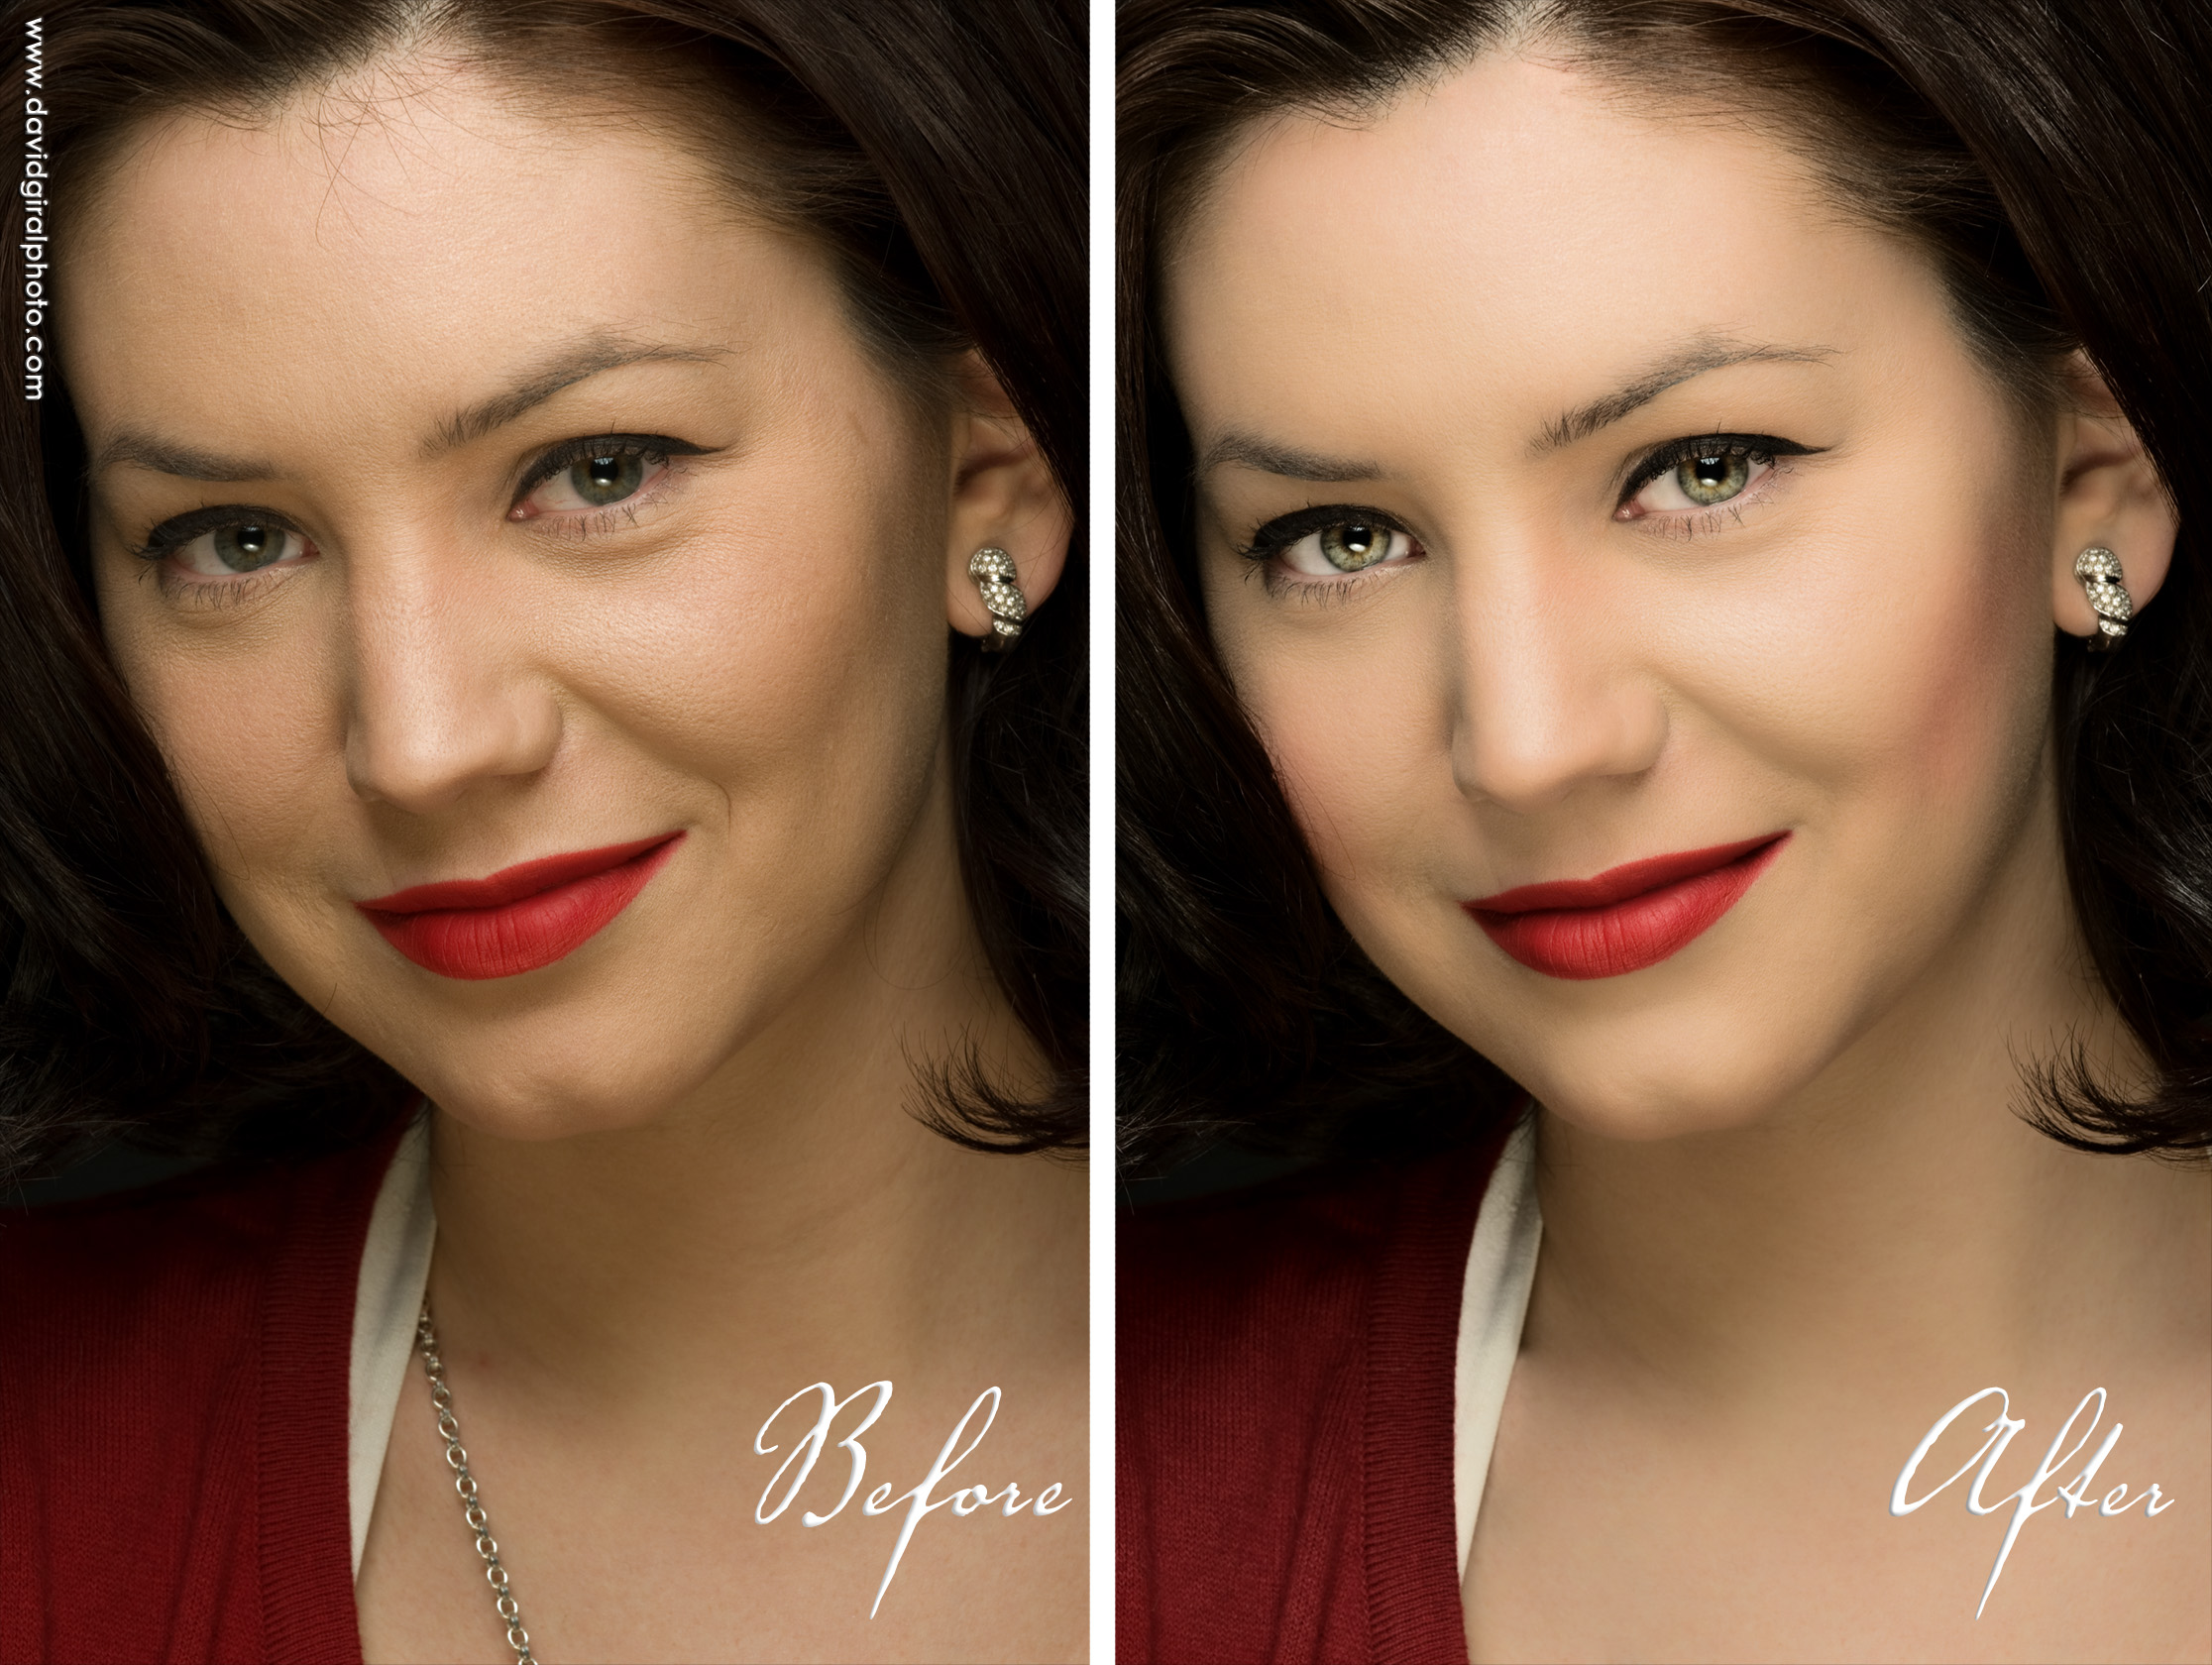 Robyn Photoshop Makeover Before/After, by David Giral